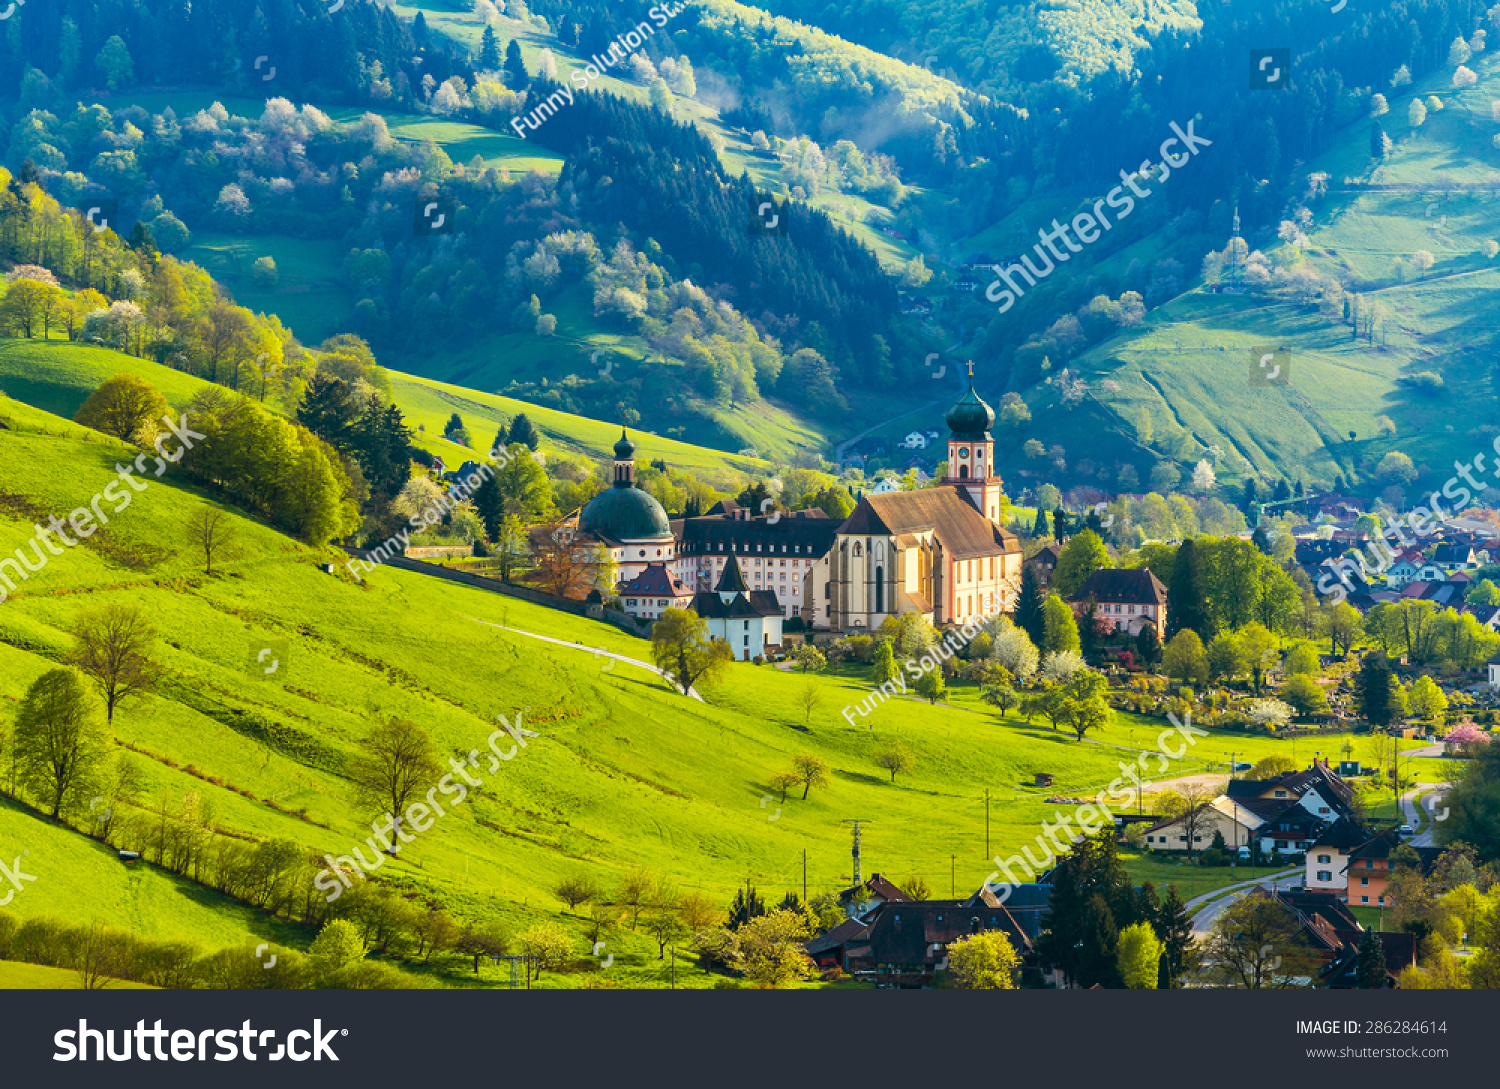 Beautiful Countryside Mountain Landscape With A Monastery